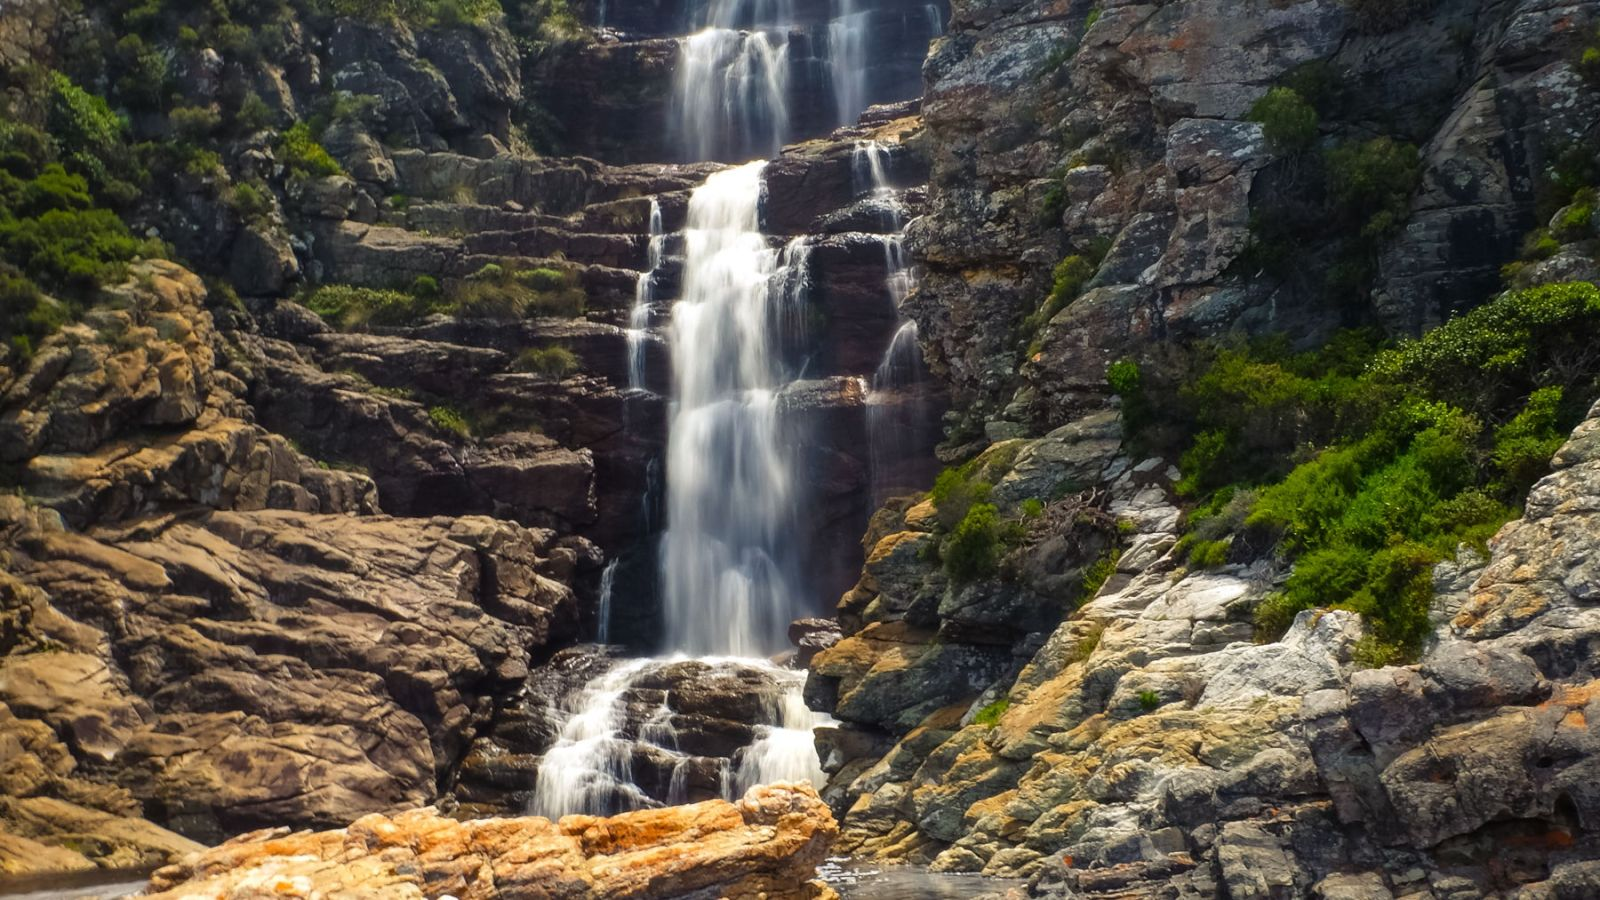 a photo of a large waterfall on the otter trail.